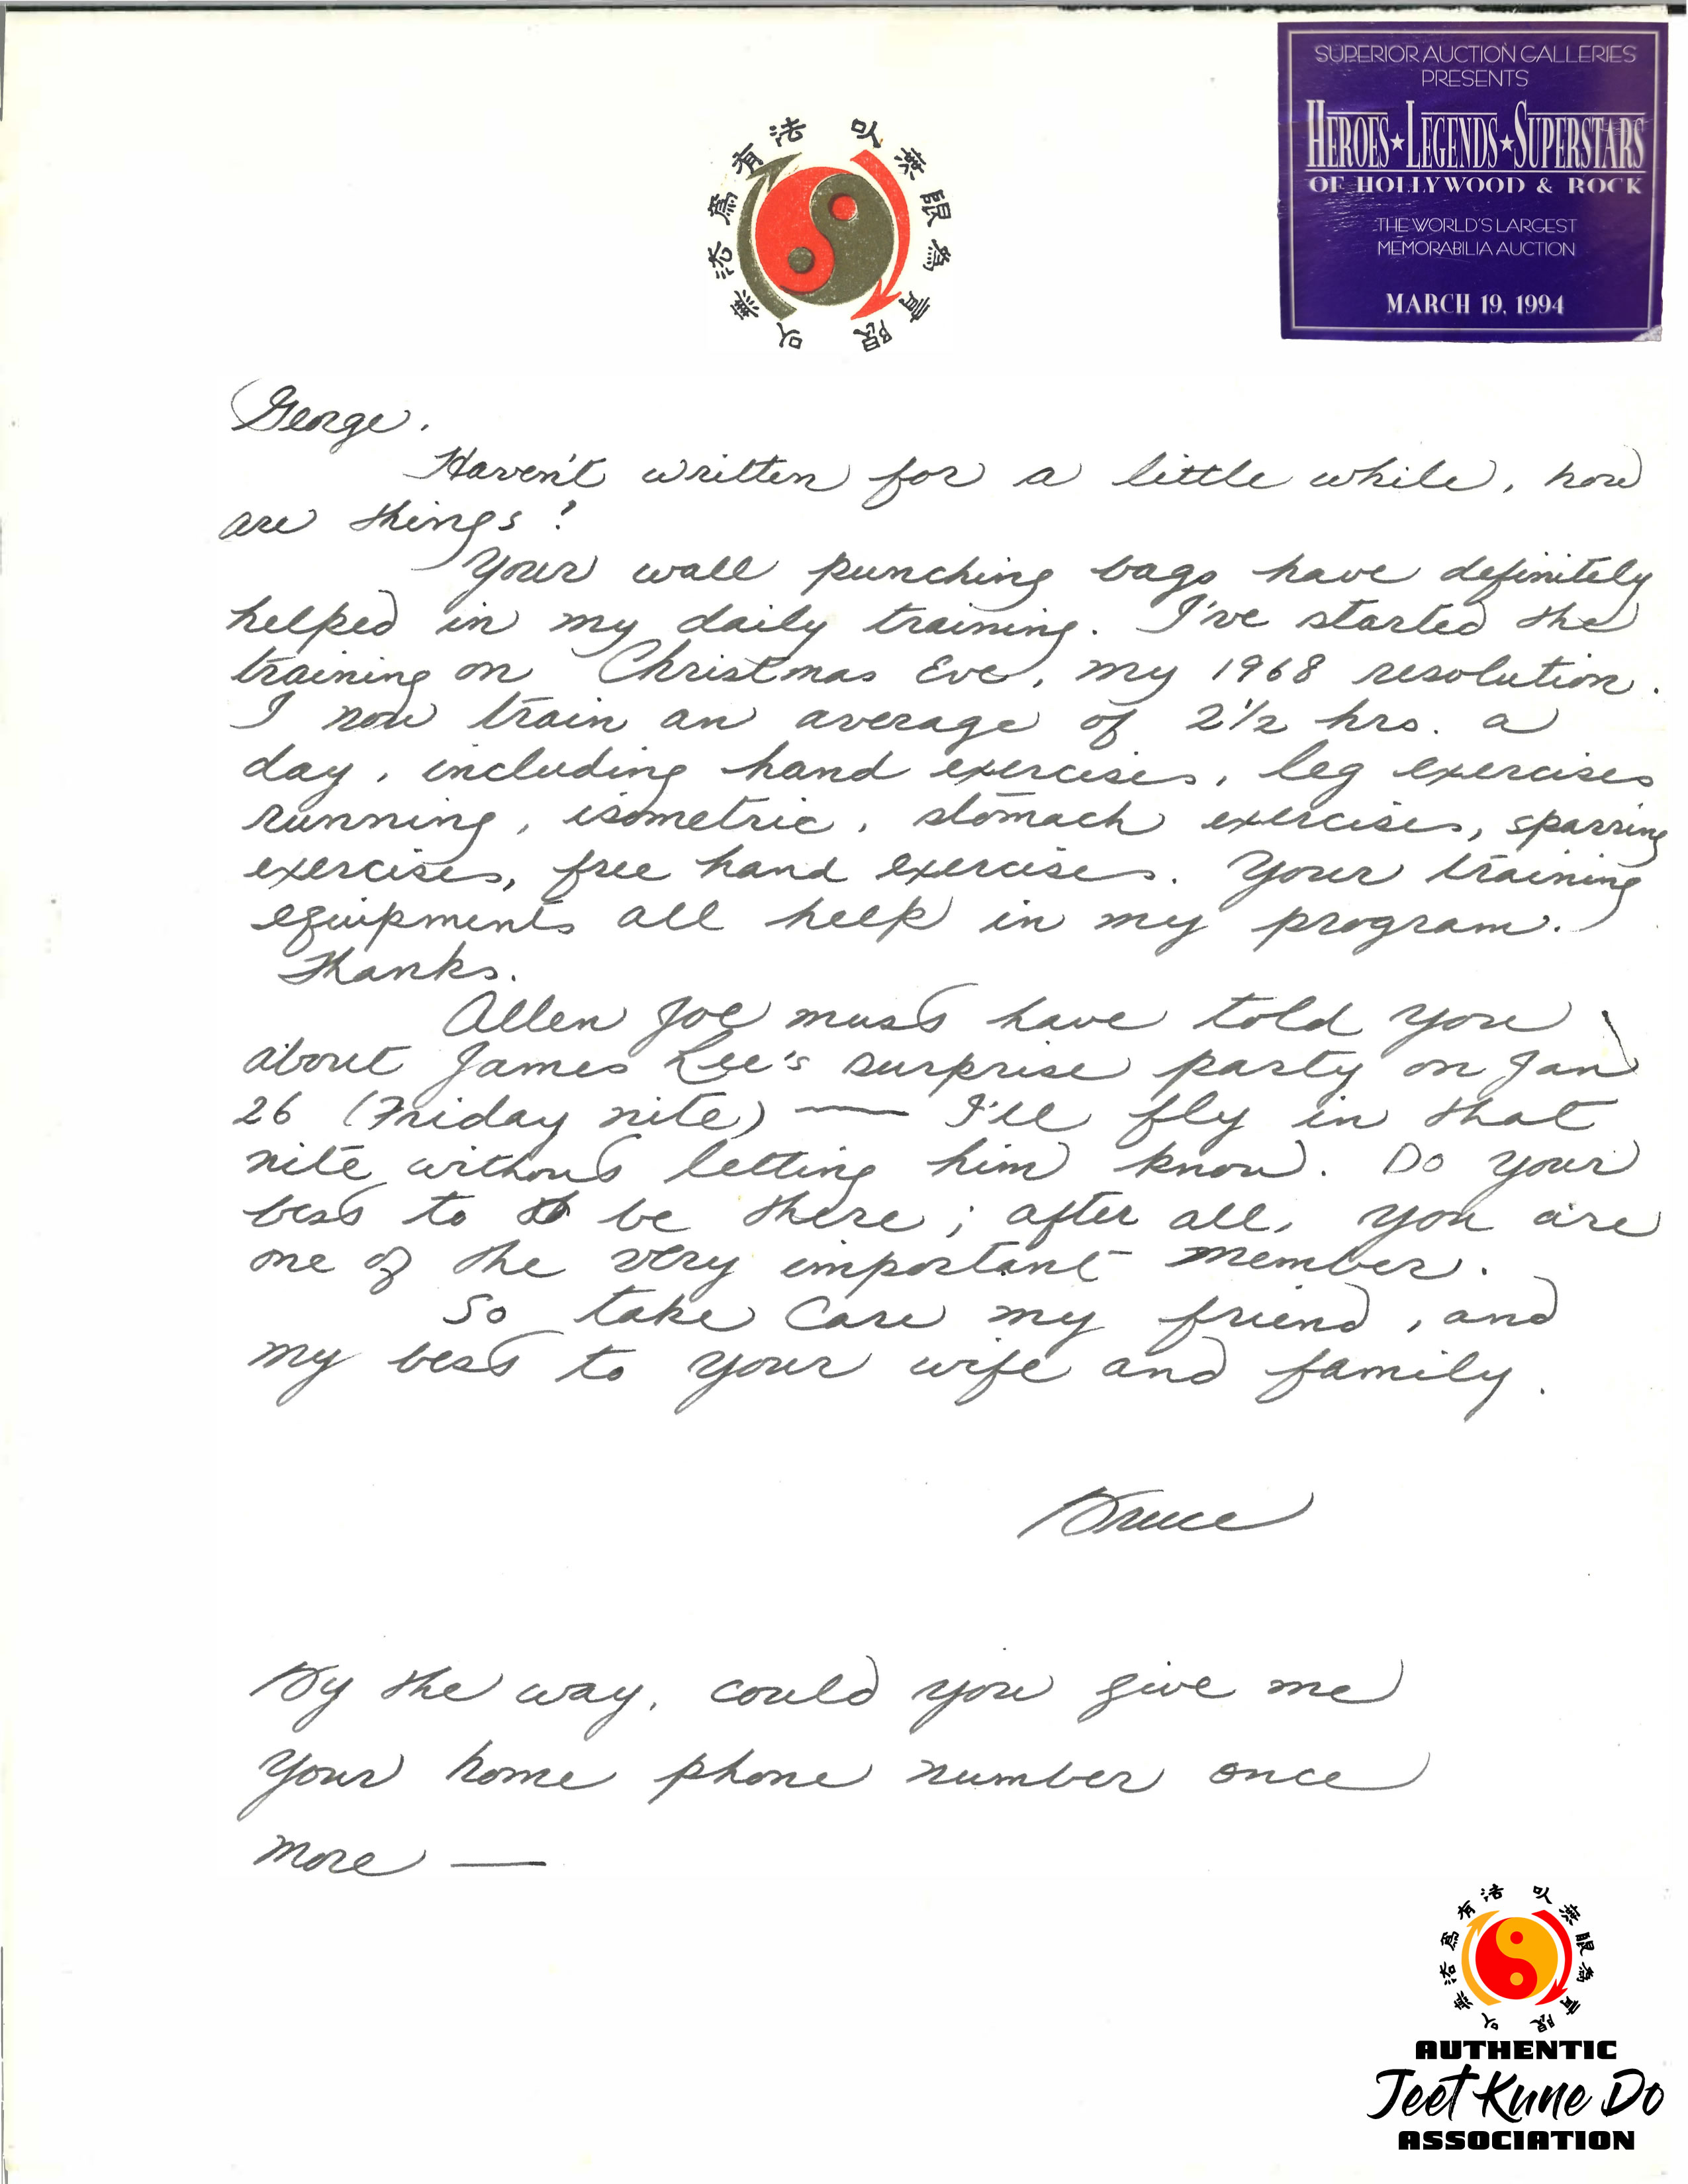 Bruce Lee's Letter to George Son Lee purchased at the Superior Auction Galleries on March 19, 1994. (Property of Michael Gonzales, Chief Instructor for the AJKD Association)